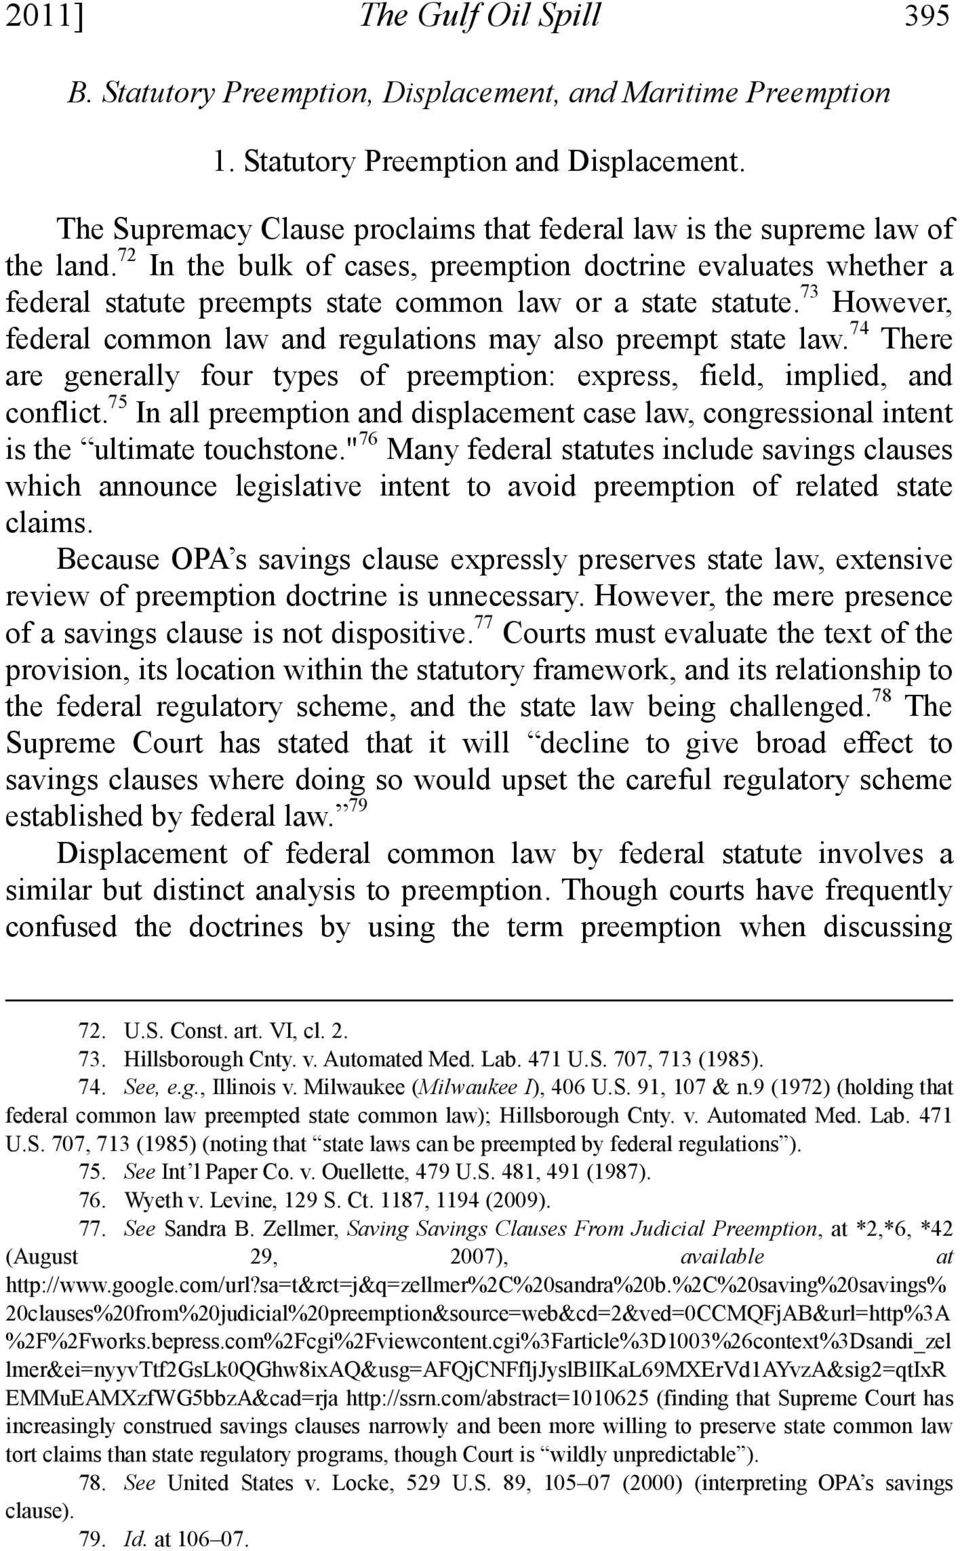 72 In the bulk of cases, preemption doctrine evaluates whether a federal statute preempts state common law or a state statute.